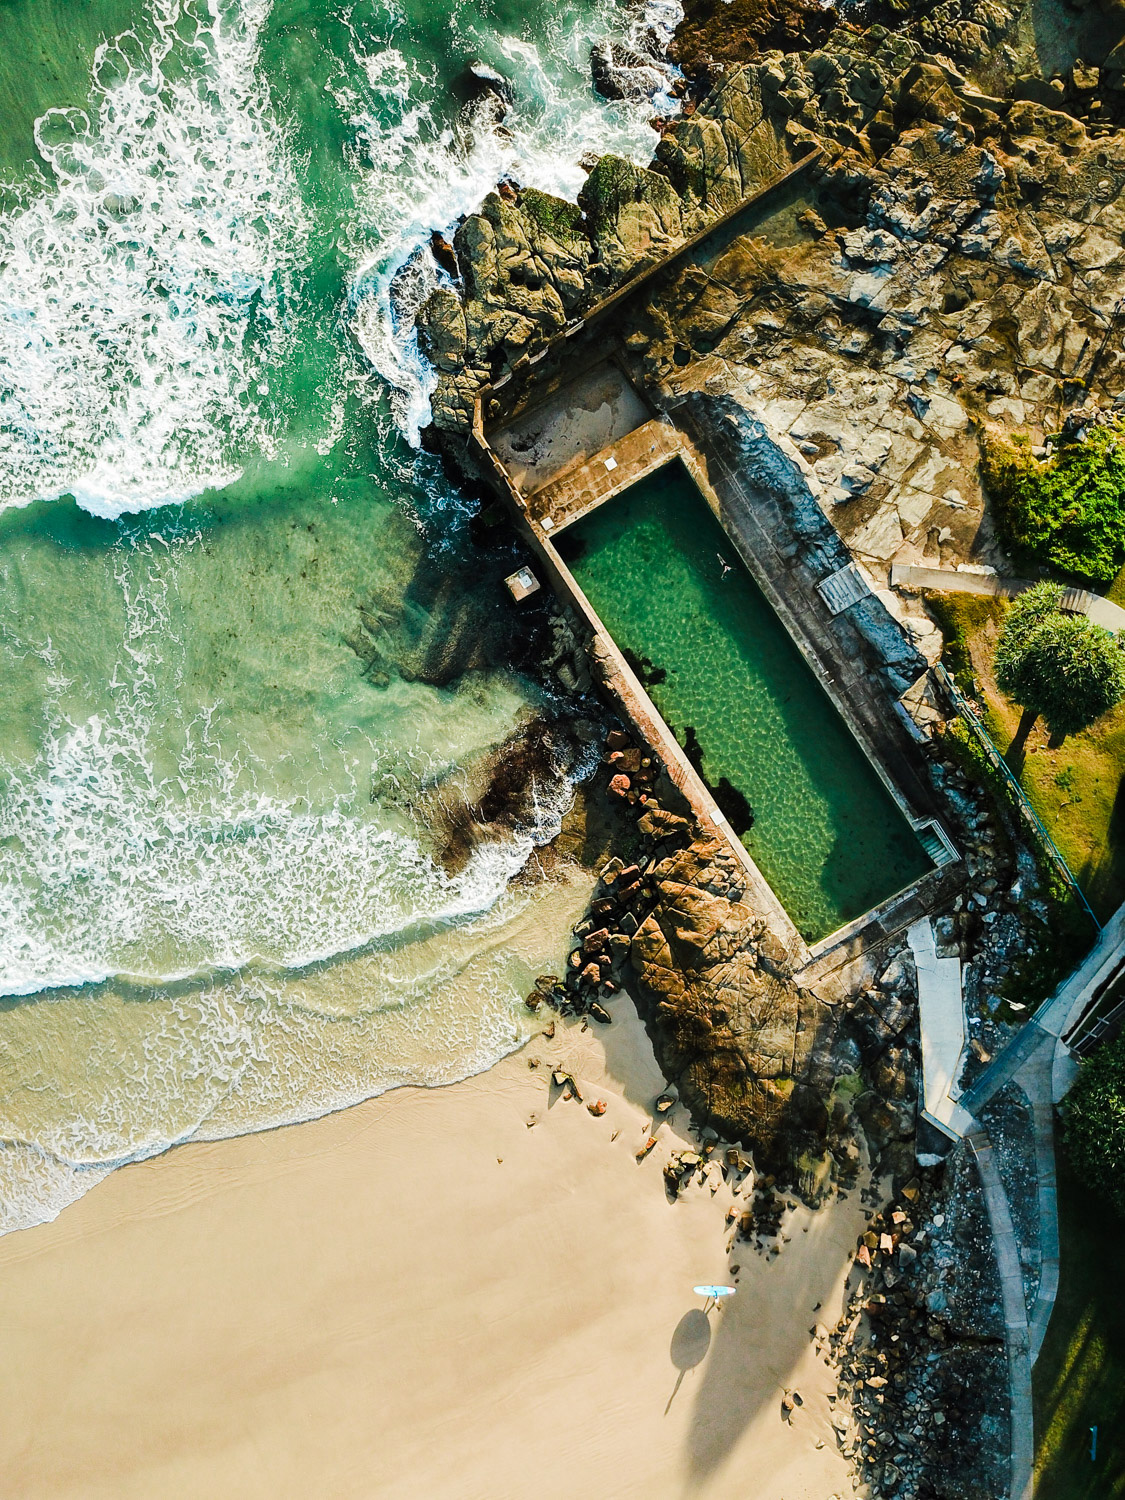 Matt Murray's drone photo of Yamba Ocean Pool. Better Drone Photography